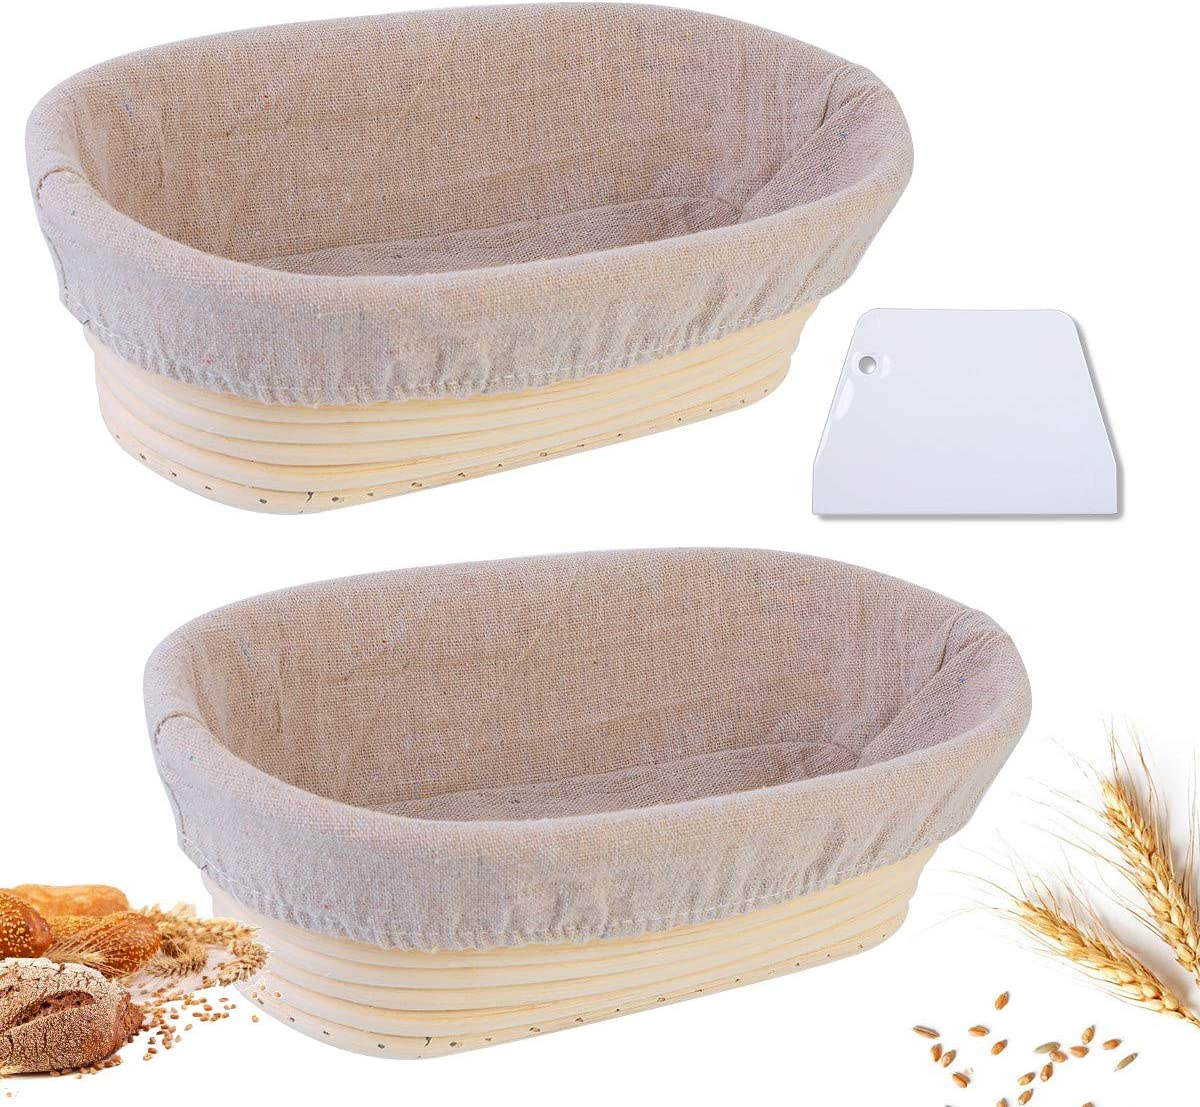 Heflashor 2 Set 10 Inch Bread Banneton Proofing Basket - Baking Dough Bowl Gifts Bread Dough Proofing Rising Rattan for Bakers Proving + 2 Cloth Covers + 2 Dough Scrapers